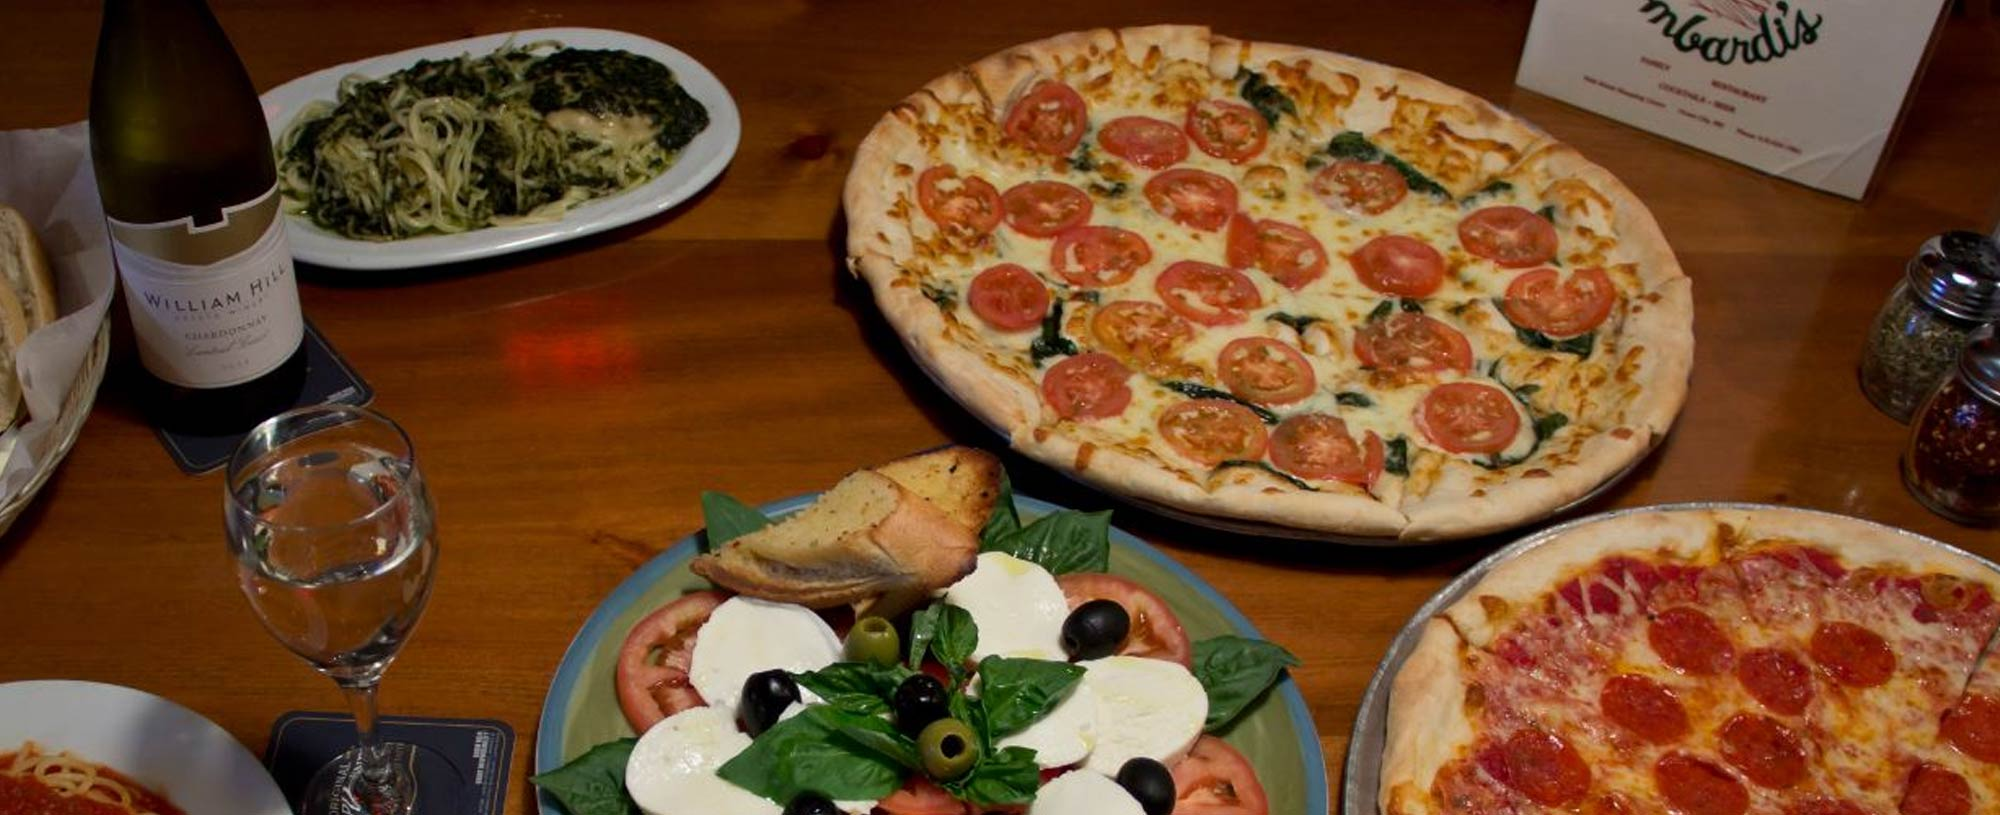 Two Pizzas Past And Italian Salad On Table With Wine At Lombardi S Pizza Ocmd